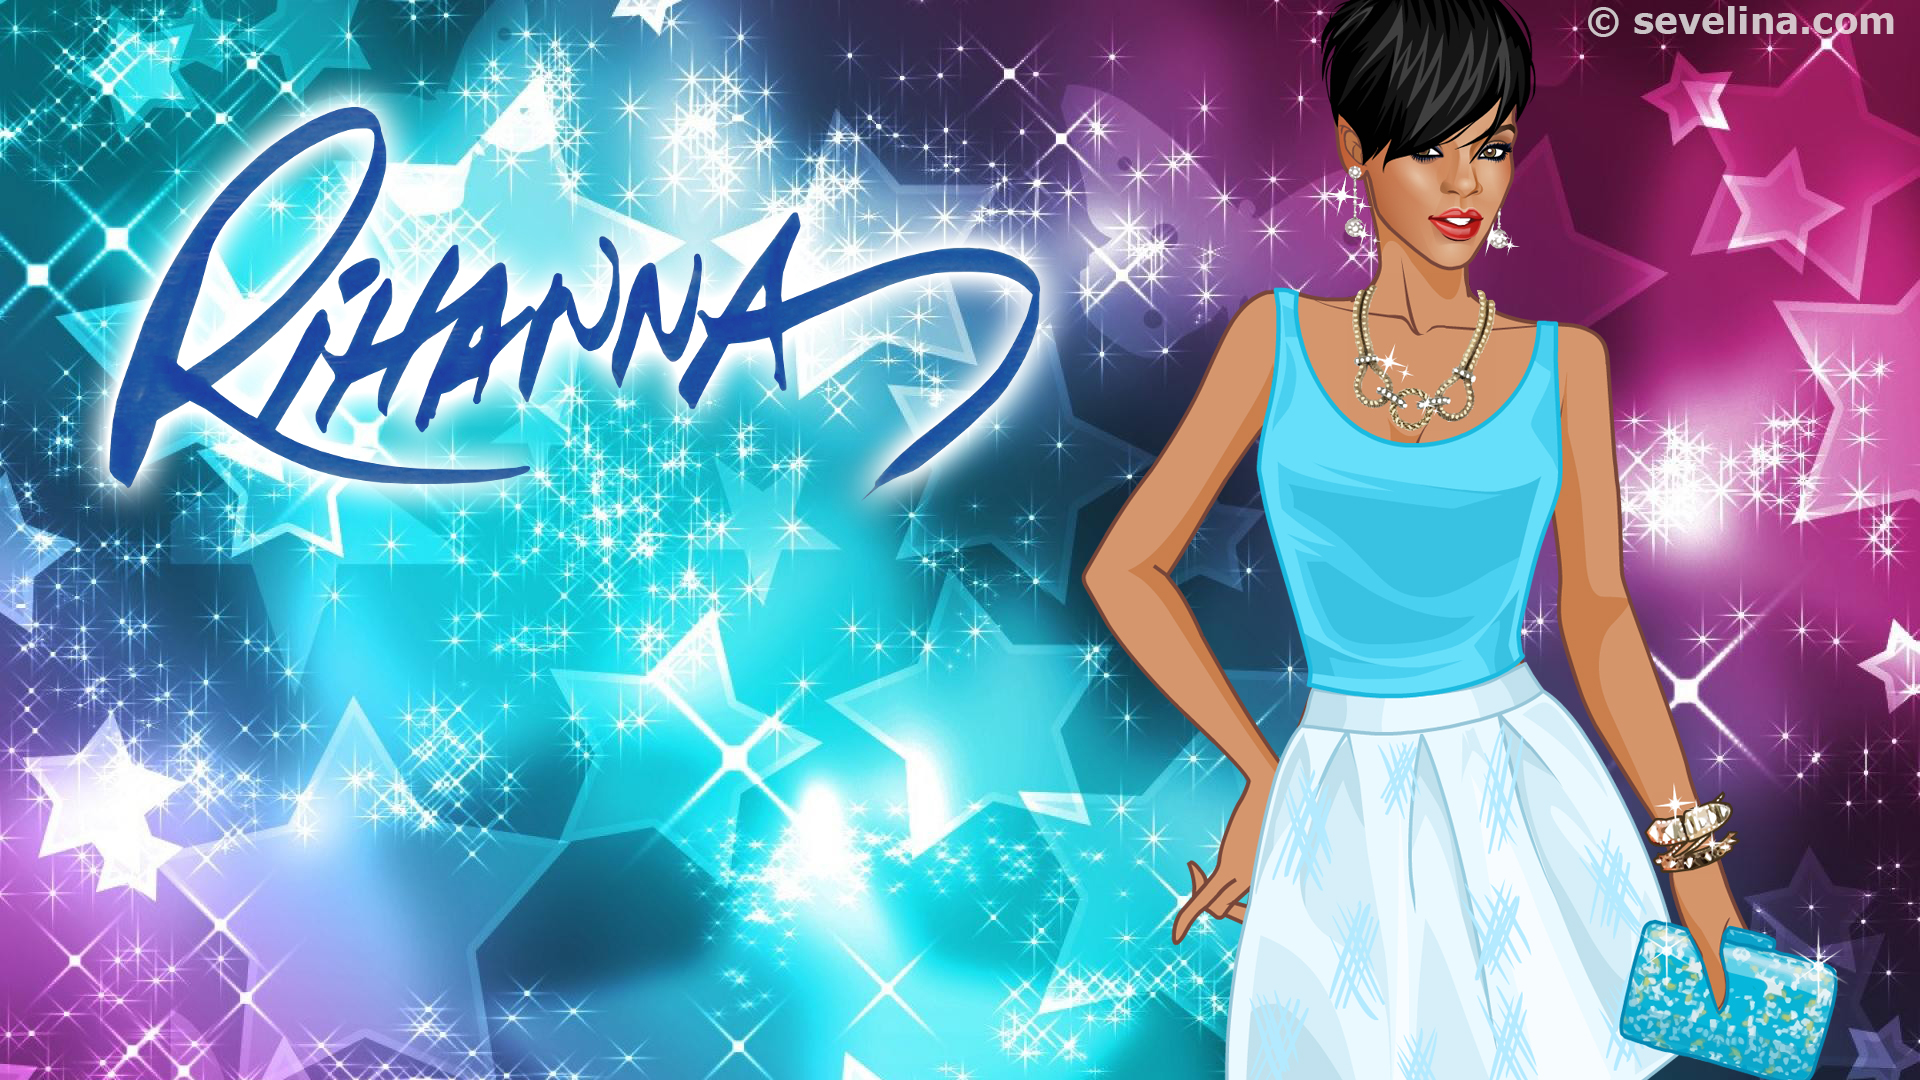 rihanna-wallpapers-2014-sevelina-dress-up-games-5